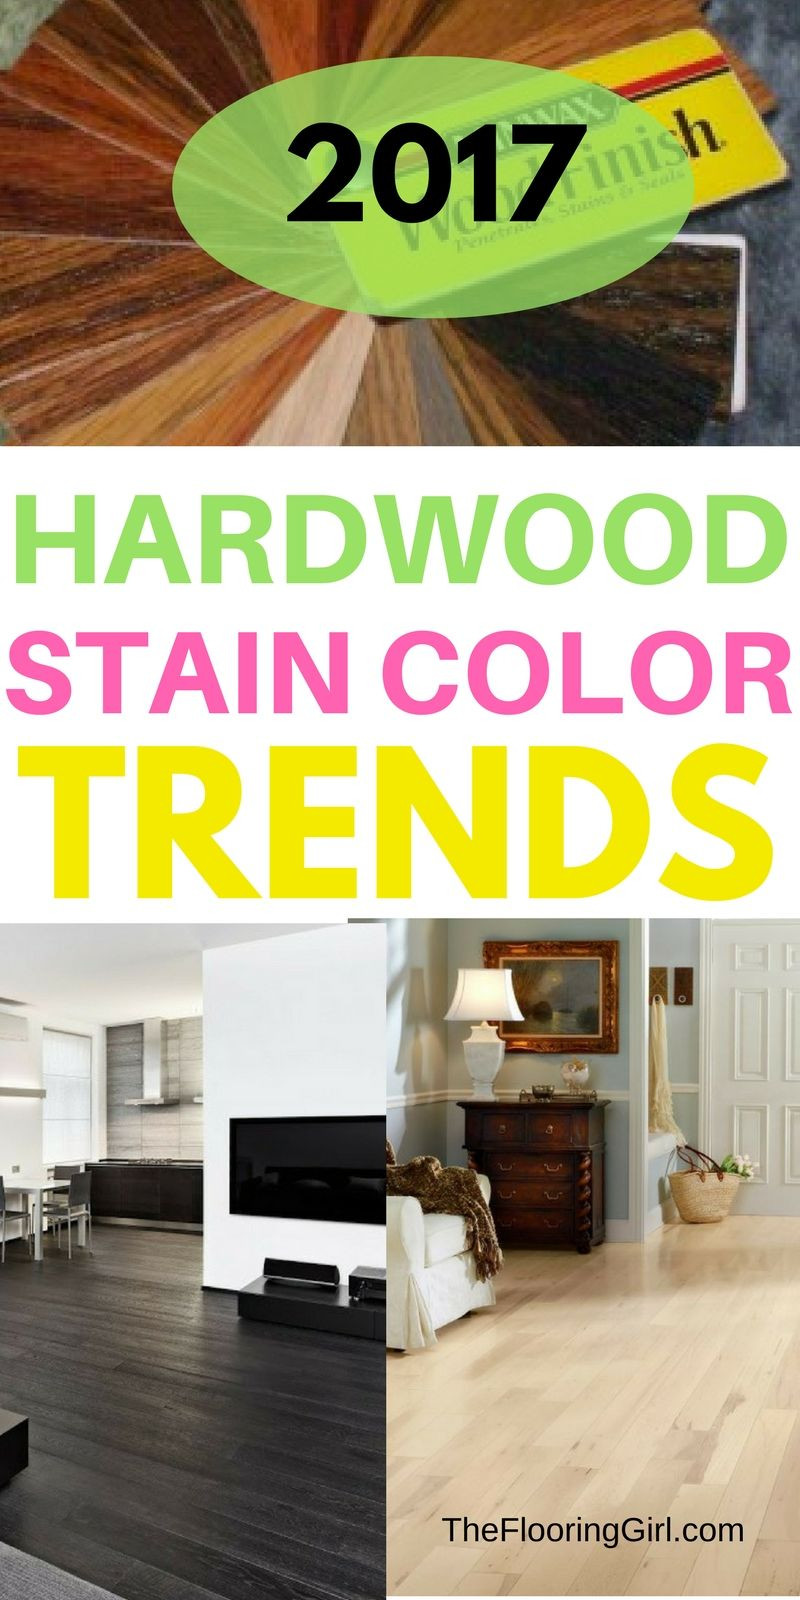 hardwood flooring lot sale of hardwood flooring stain color trends 2018 more from the flooring throughout hardwood flooring stain color trends for 2017 hardwood colors that are in style theflooringgirl com